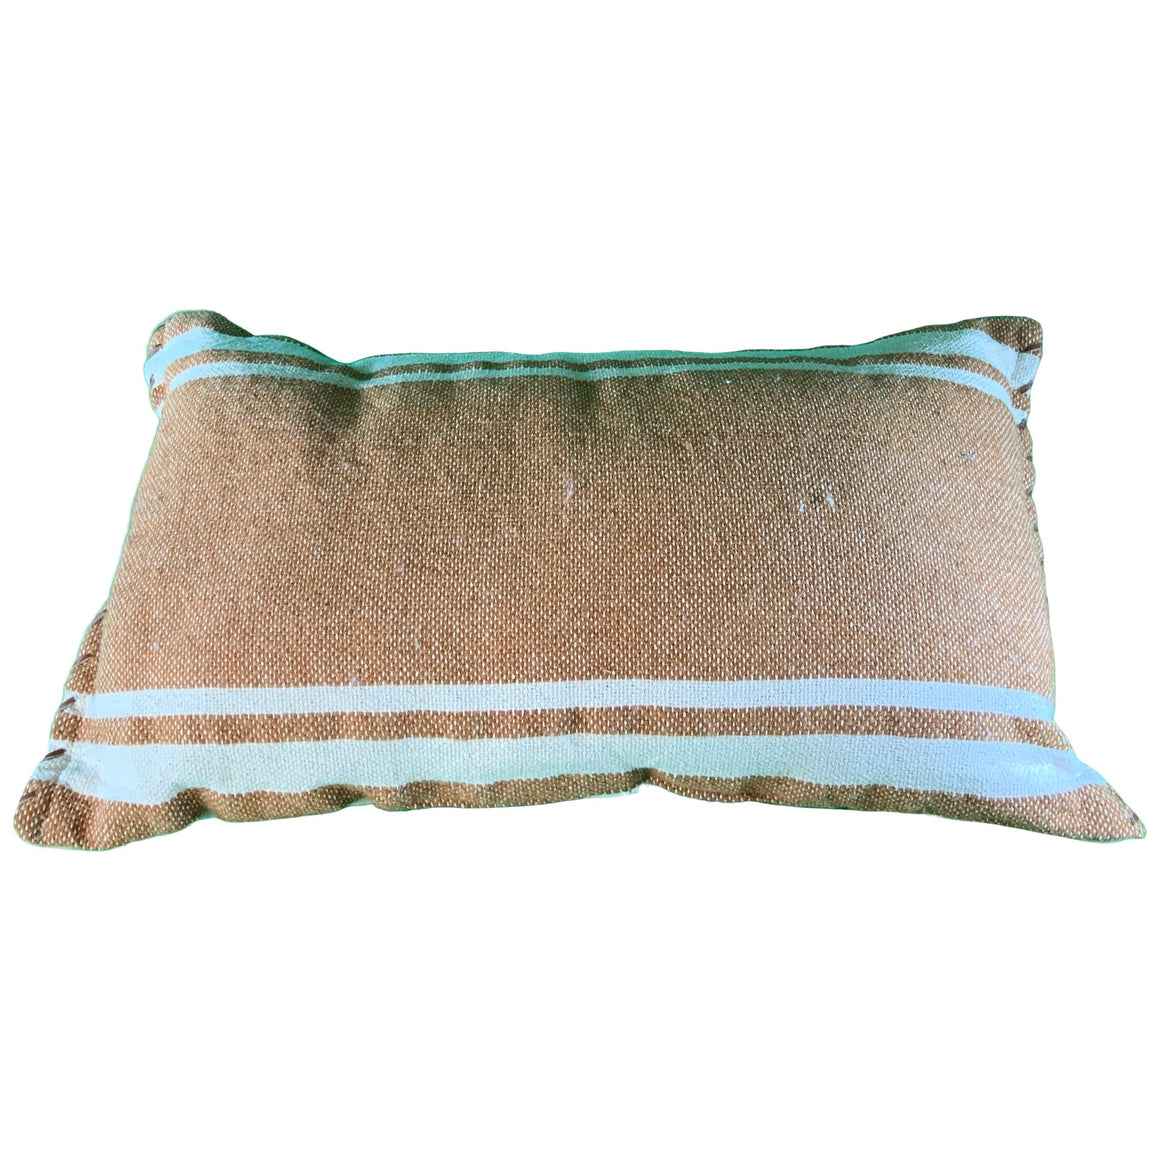 Wool/Cotton Woven Stripe Oversize Lumbar Throw Pillow With Whipstitch Trim - Threshold™